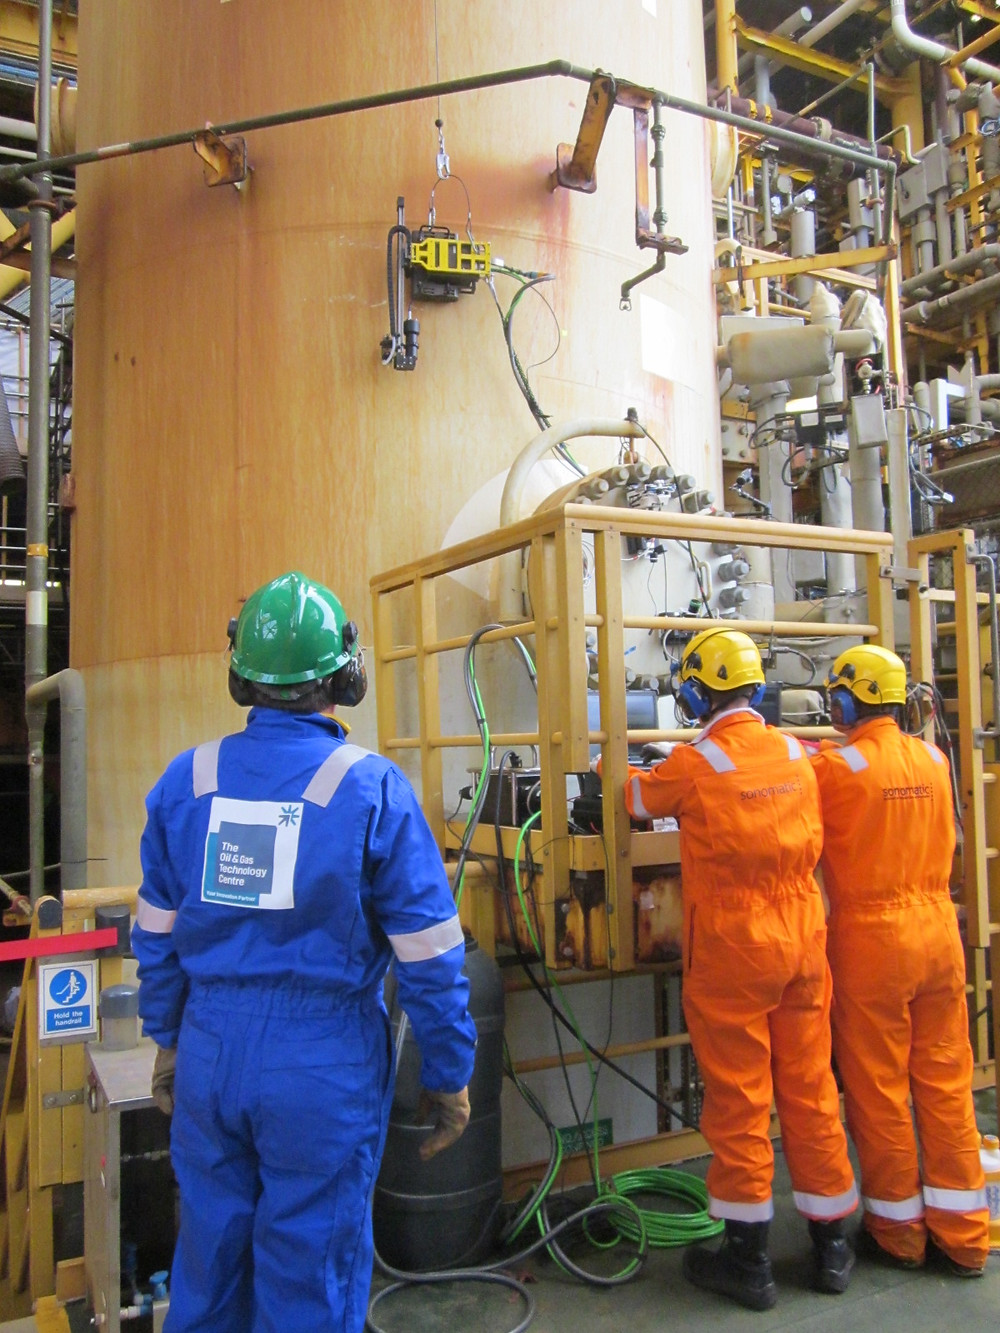 Field trials of non-intrusive inspection technology taking place on Total's Elgin platform.